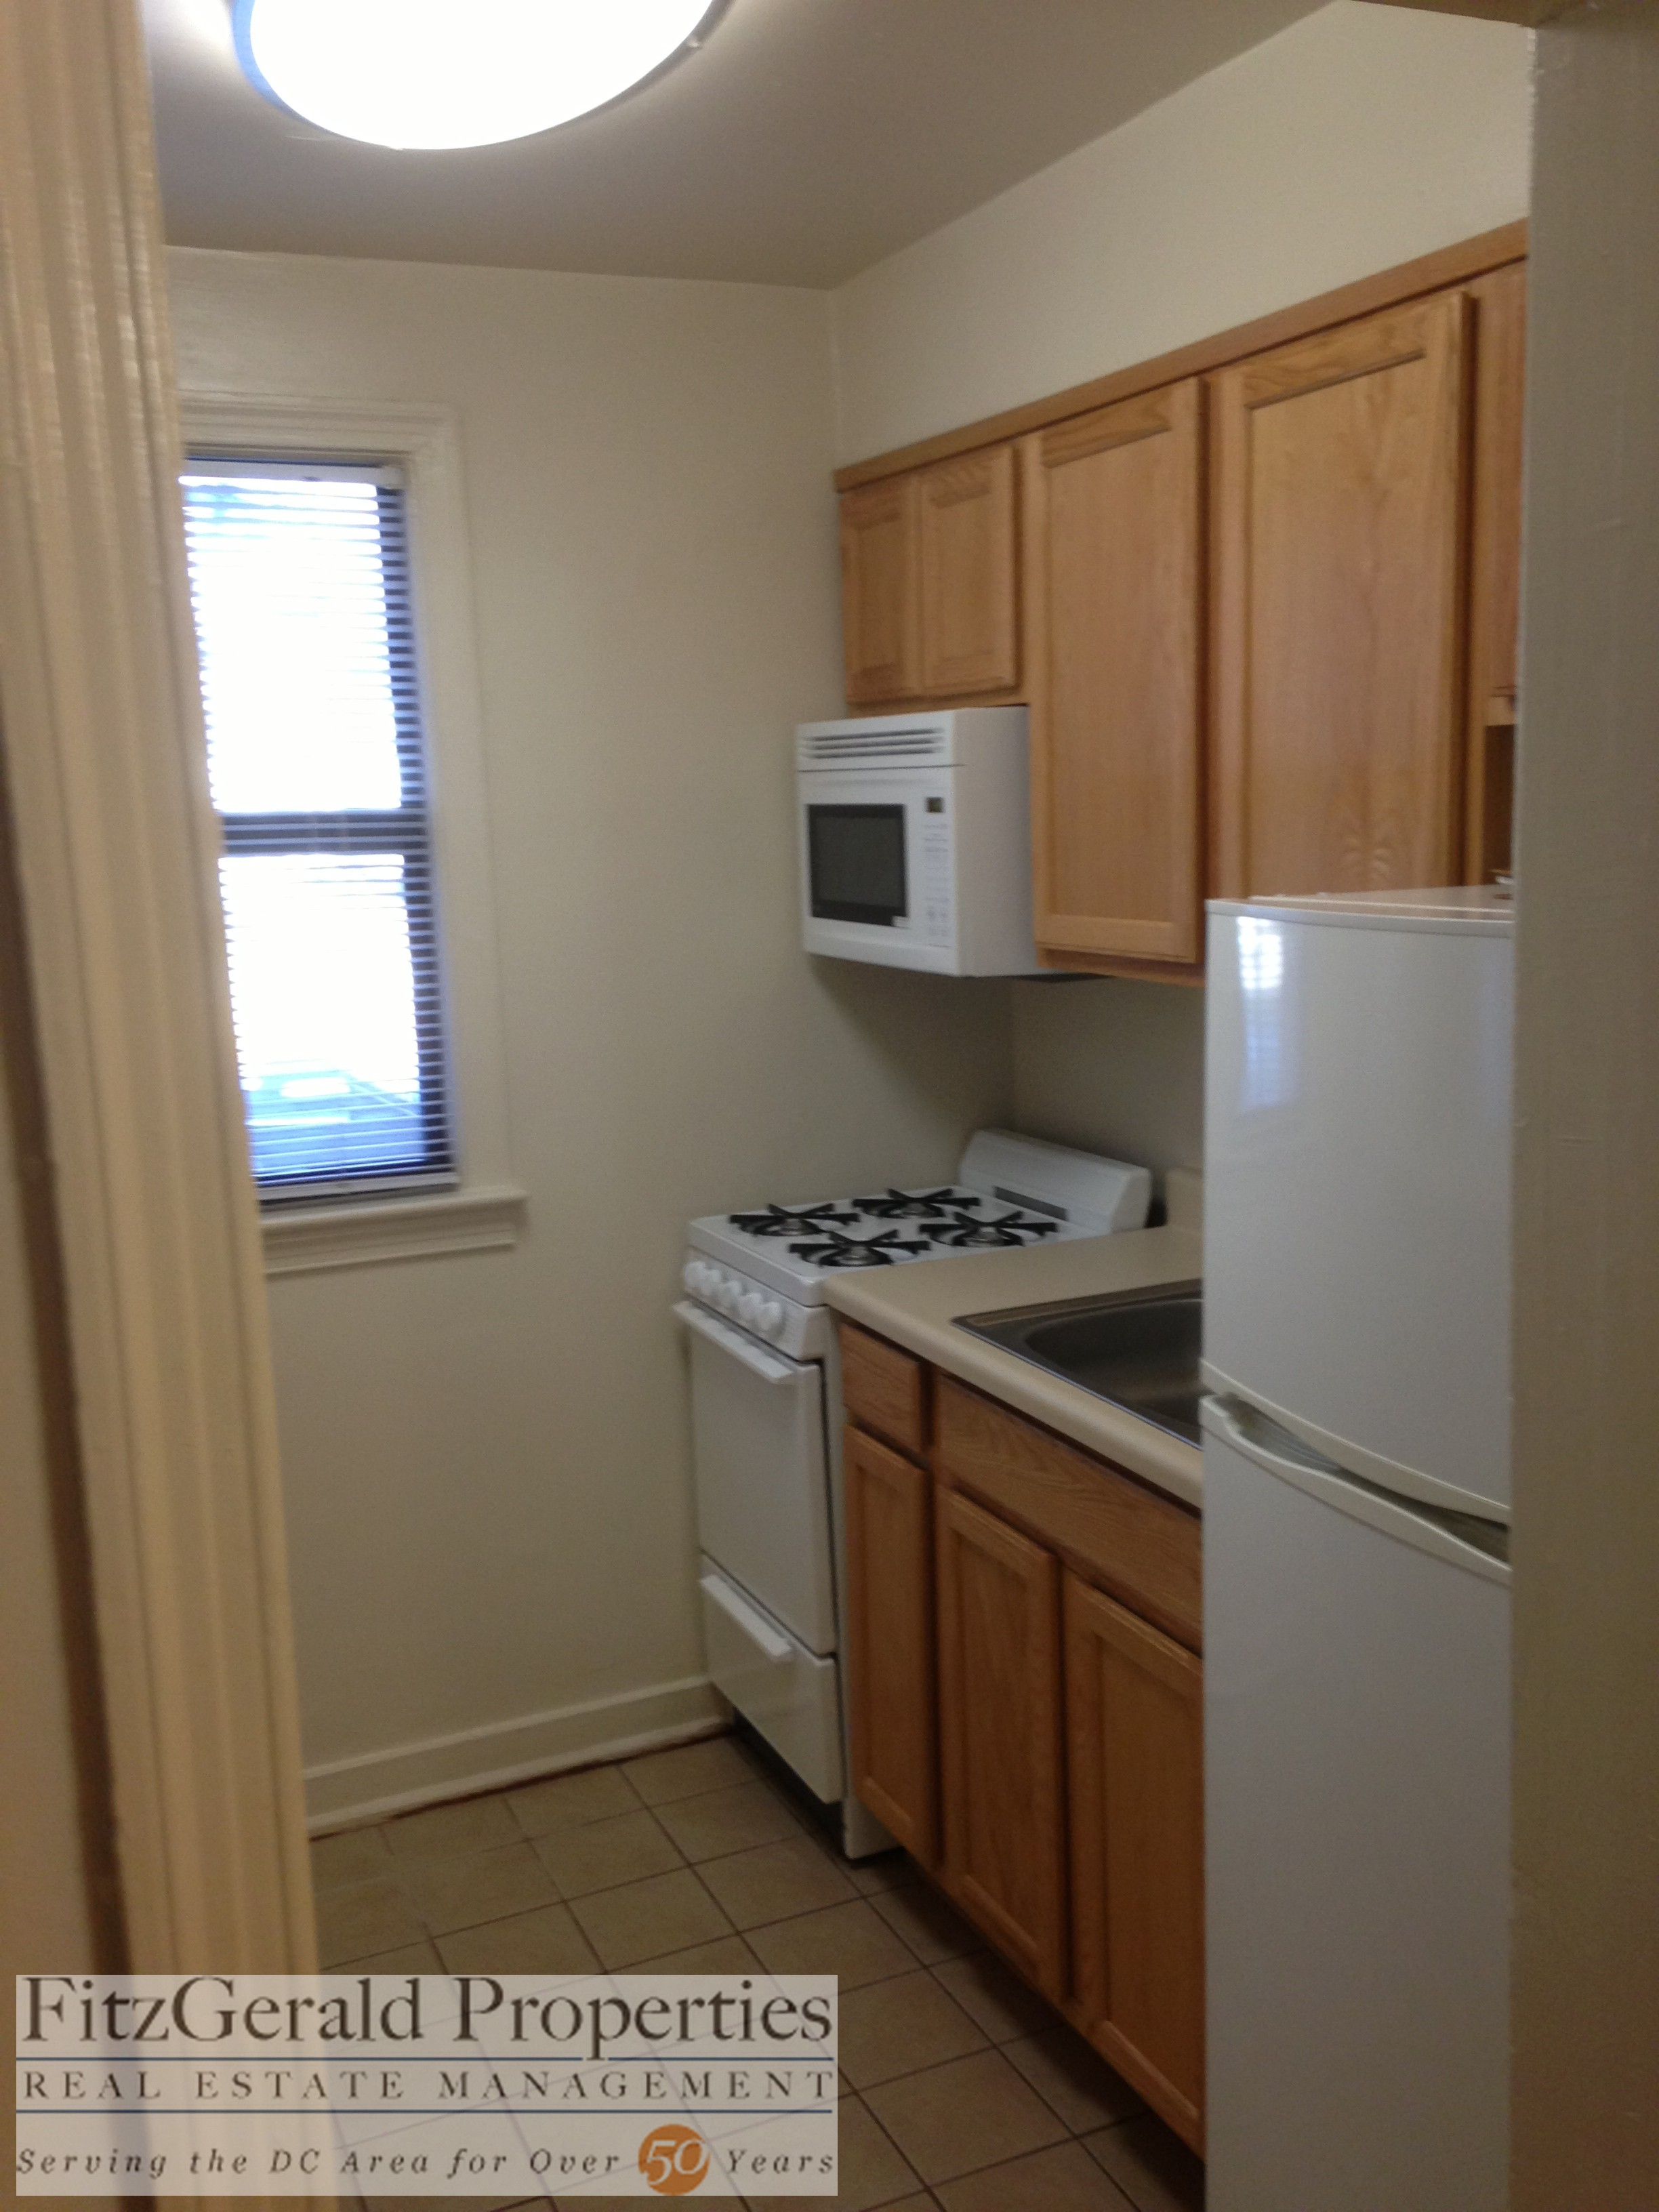 4471 Macarthur Blvd Nw 104 Washington Dc 20007 1 Bedroom Apartment For Rent Padmapper